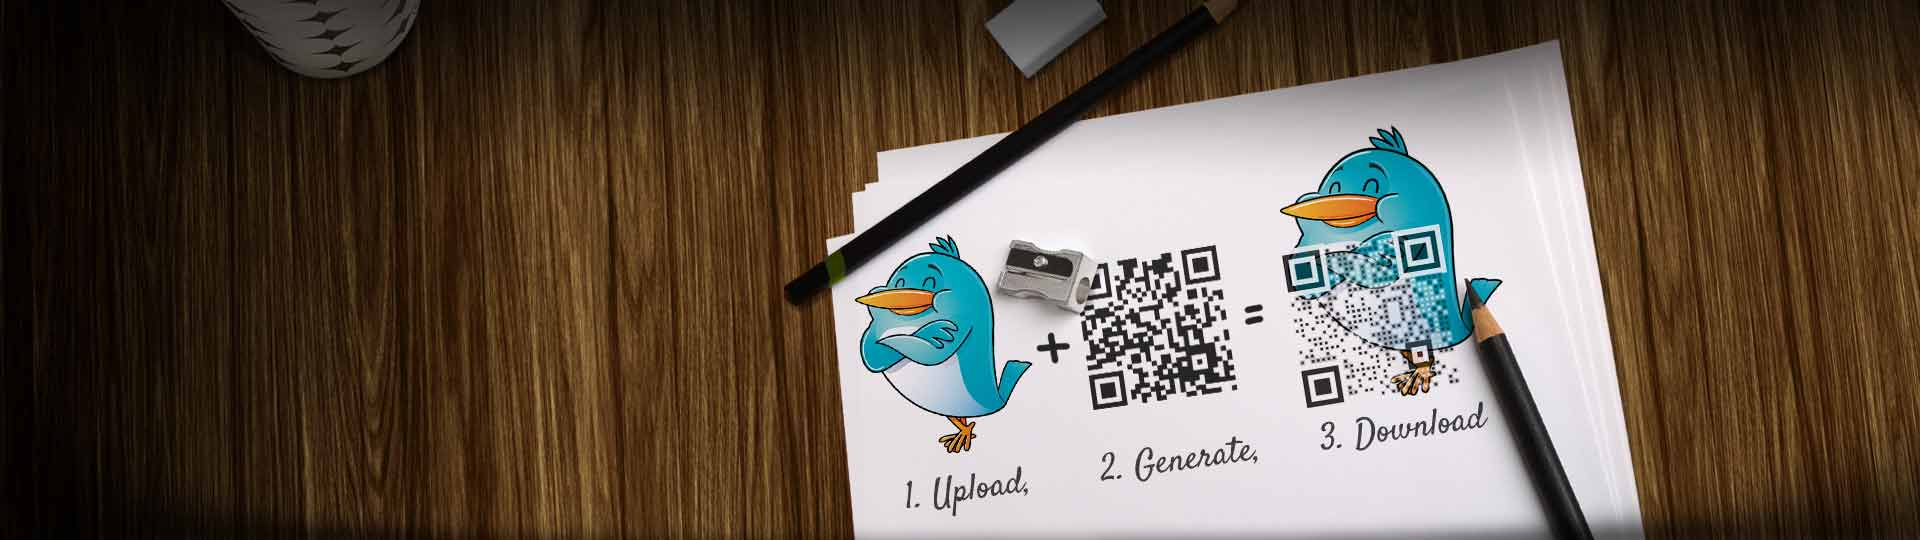 Free Visual QR Code Generator | Custom QR Code Design | Visualead